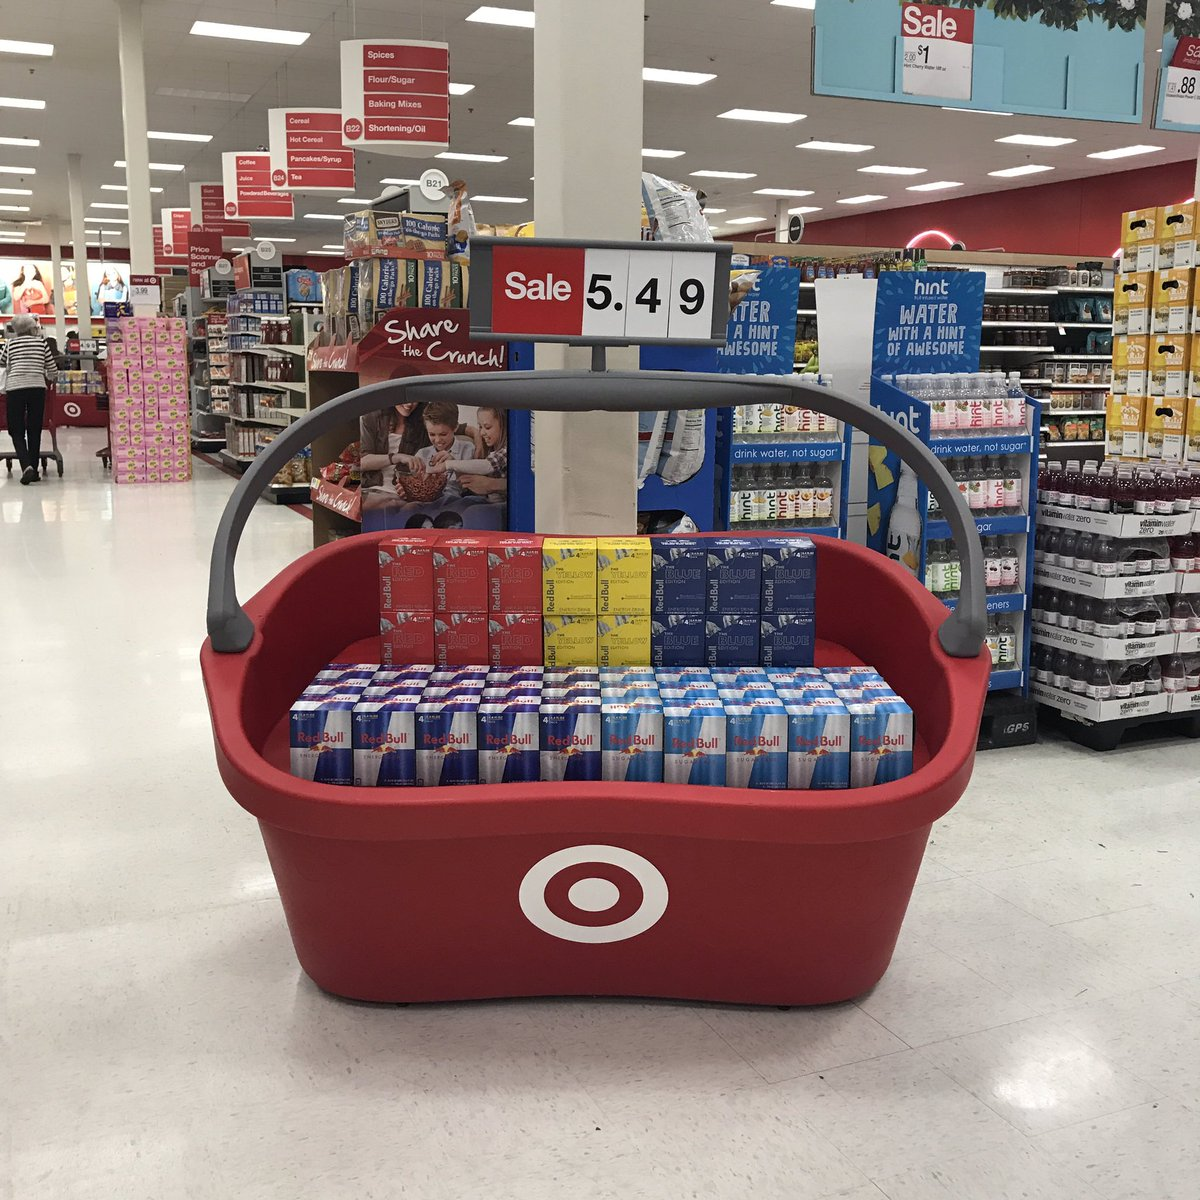 giant target market Target will create a more guest-centric experience by tailoring its assortment and offering more locally relevant products, with demographics, climate, location and other guest-led factors driving merchandising decisions.